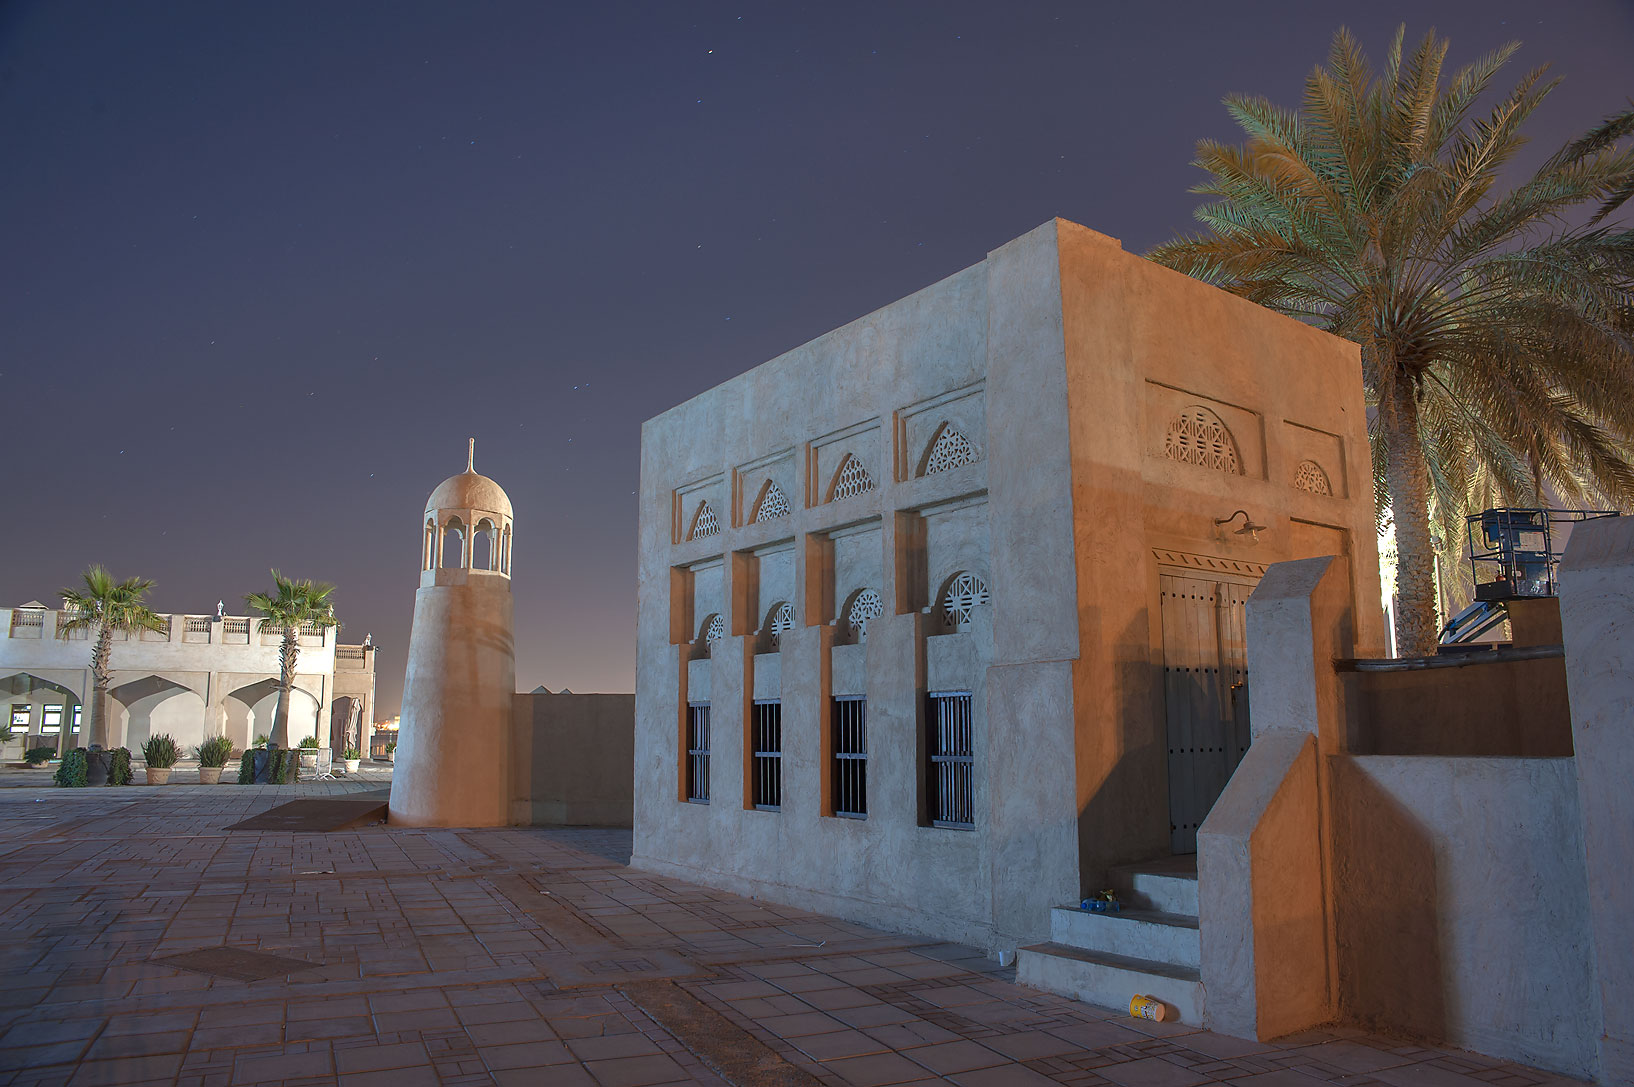 Reconstructed historic village with a mosque bult...near Balhambar Restaurant. Doha, Qatar